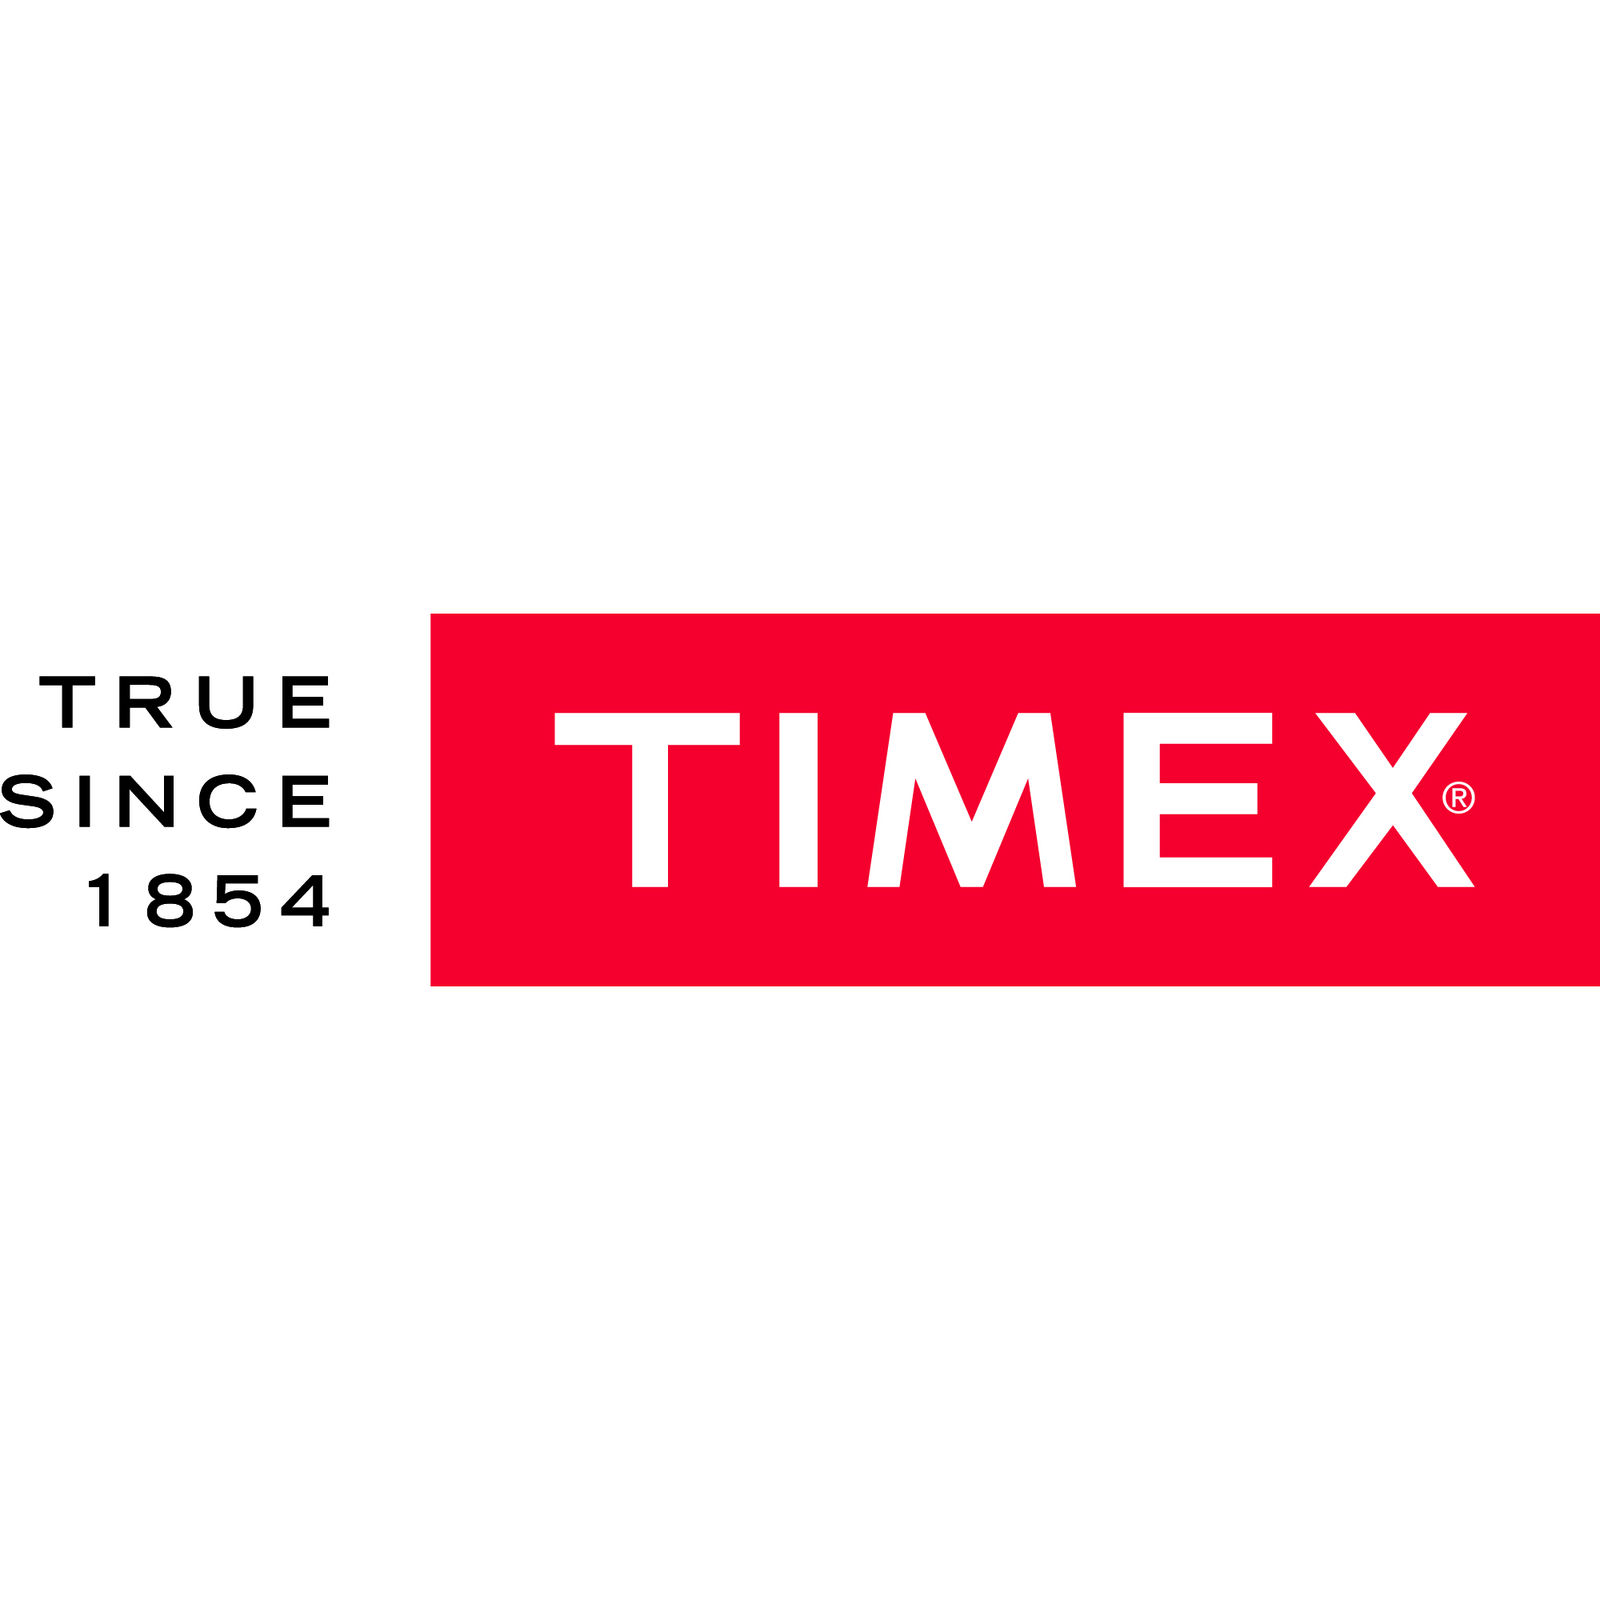 TIMEX